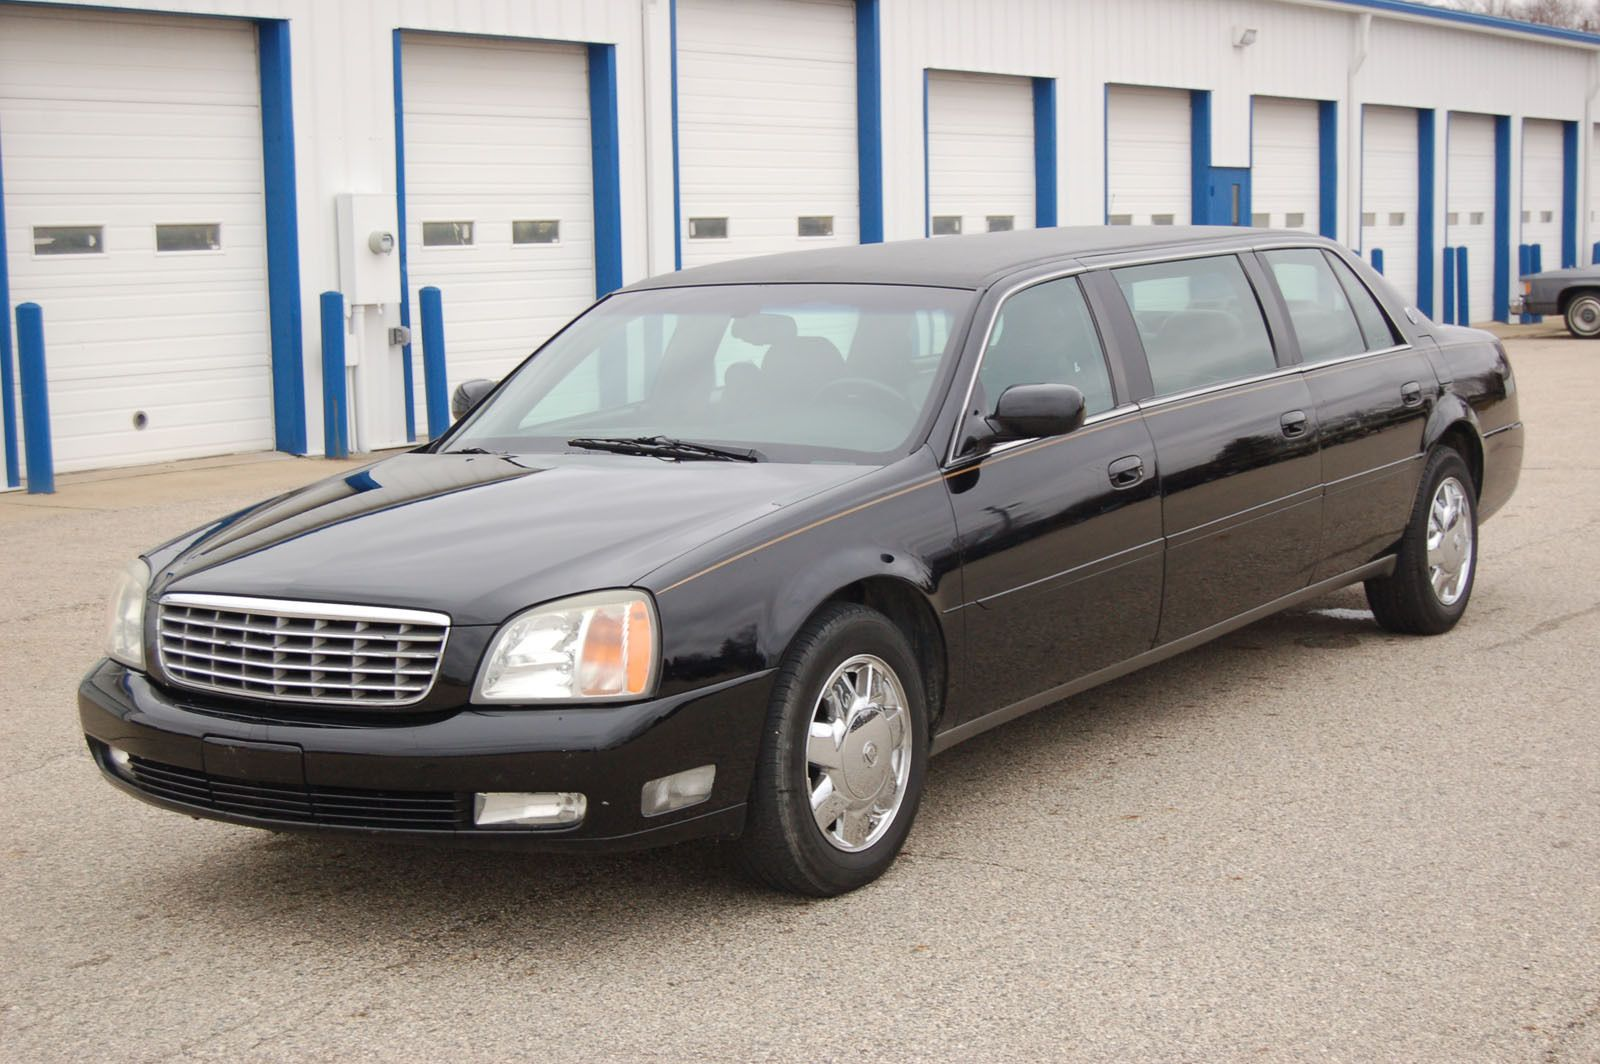 2002 cadillac deville limousine six door limousine by sayers and scovill